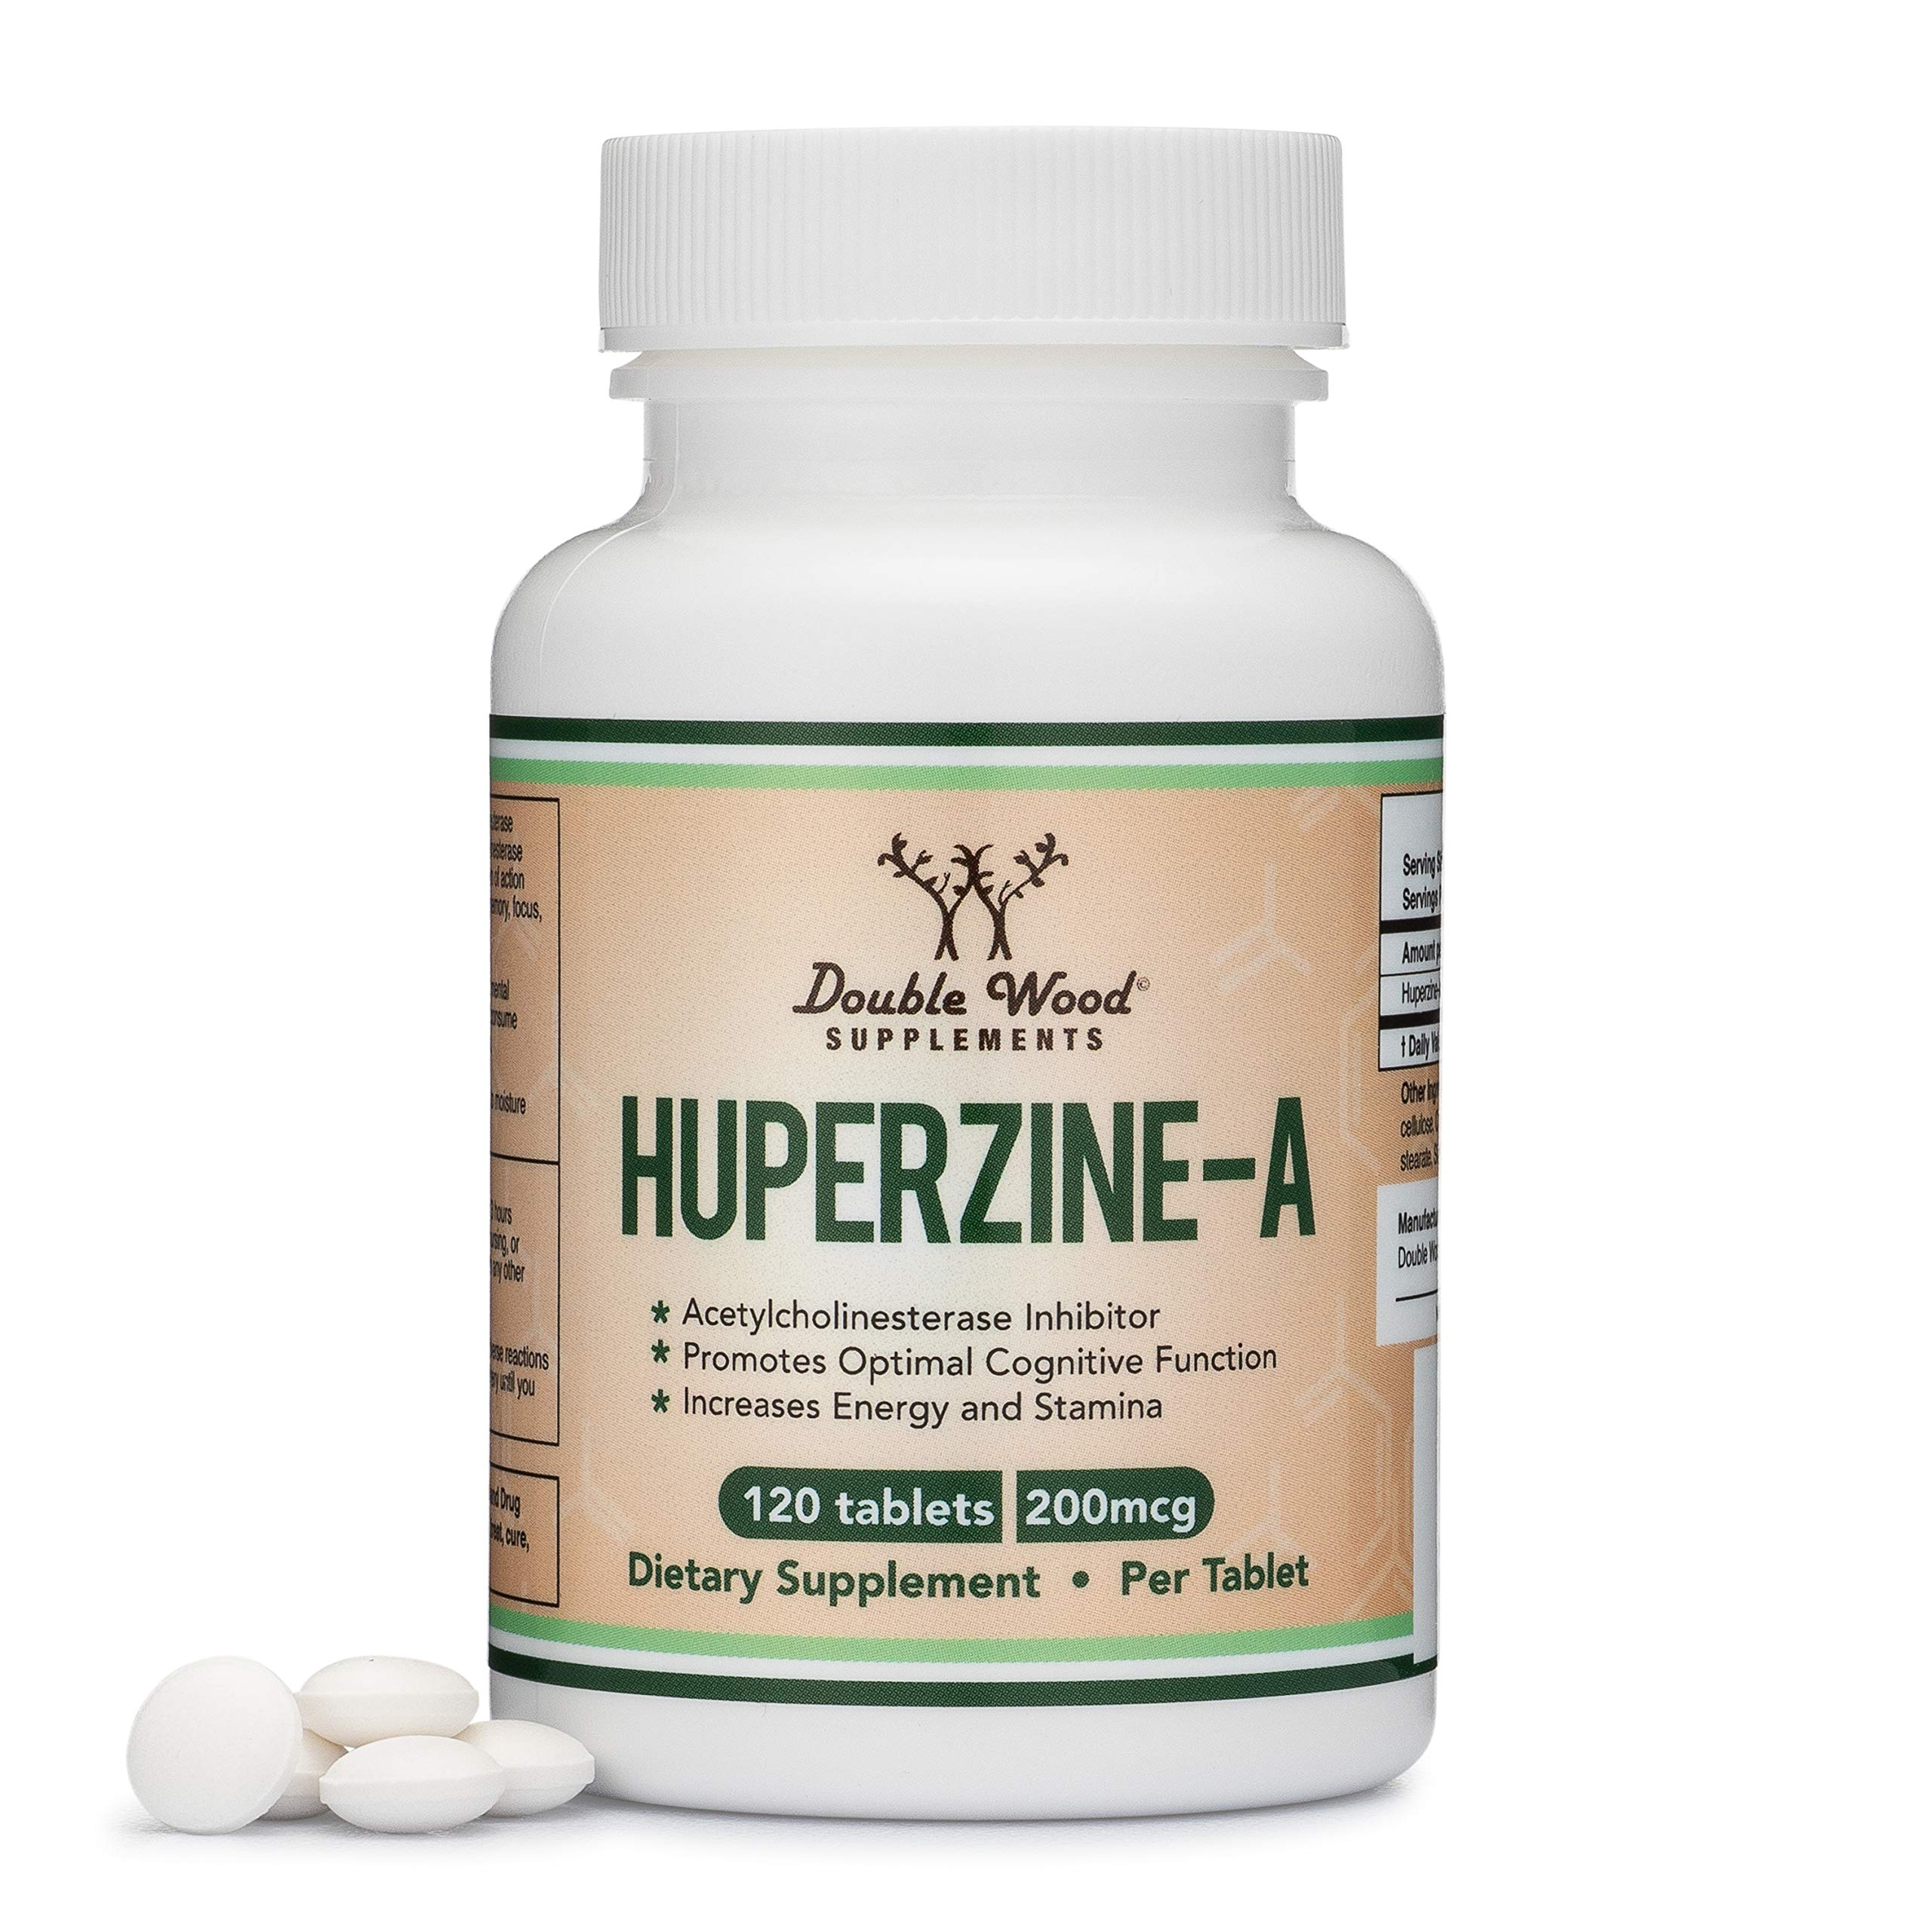 Huperzine A 200mcg (Third Party Tested) Made in The USA, 120 Tablets, Nootropics Brain Supplement to Boost Acetylcholine, Improve Memory and Focus by Double Wood Supplements by Double Wood Supplements (Image #1)